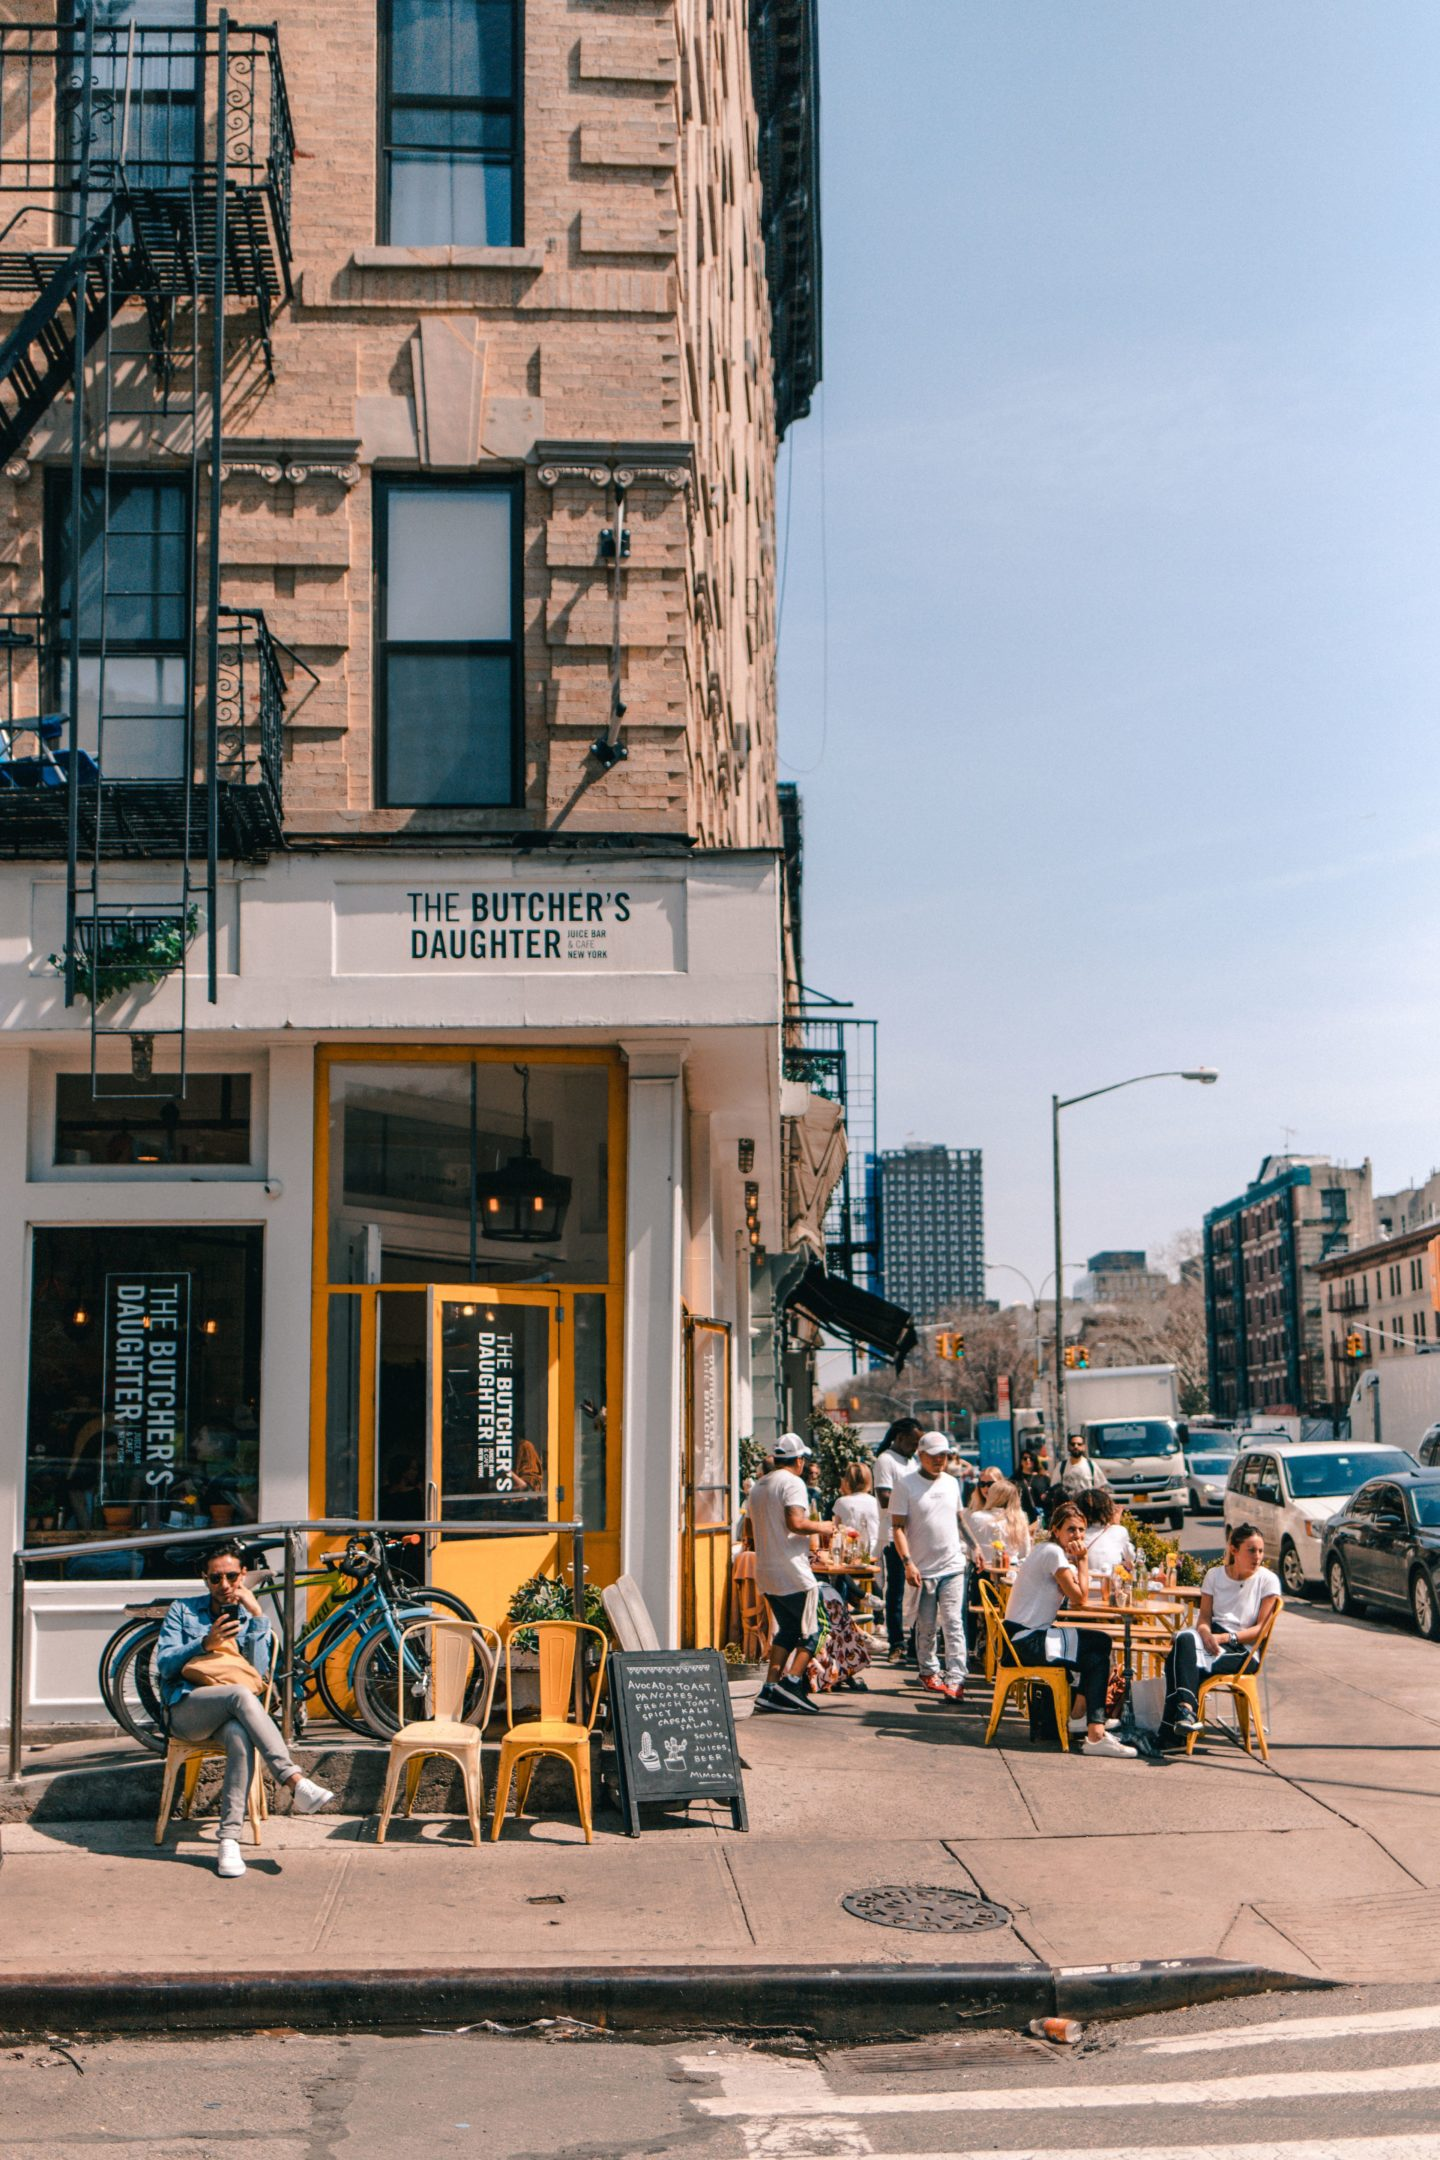 NYC on a Budget Tips | How to Save Money When Traveling to NYC